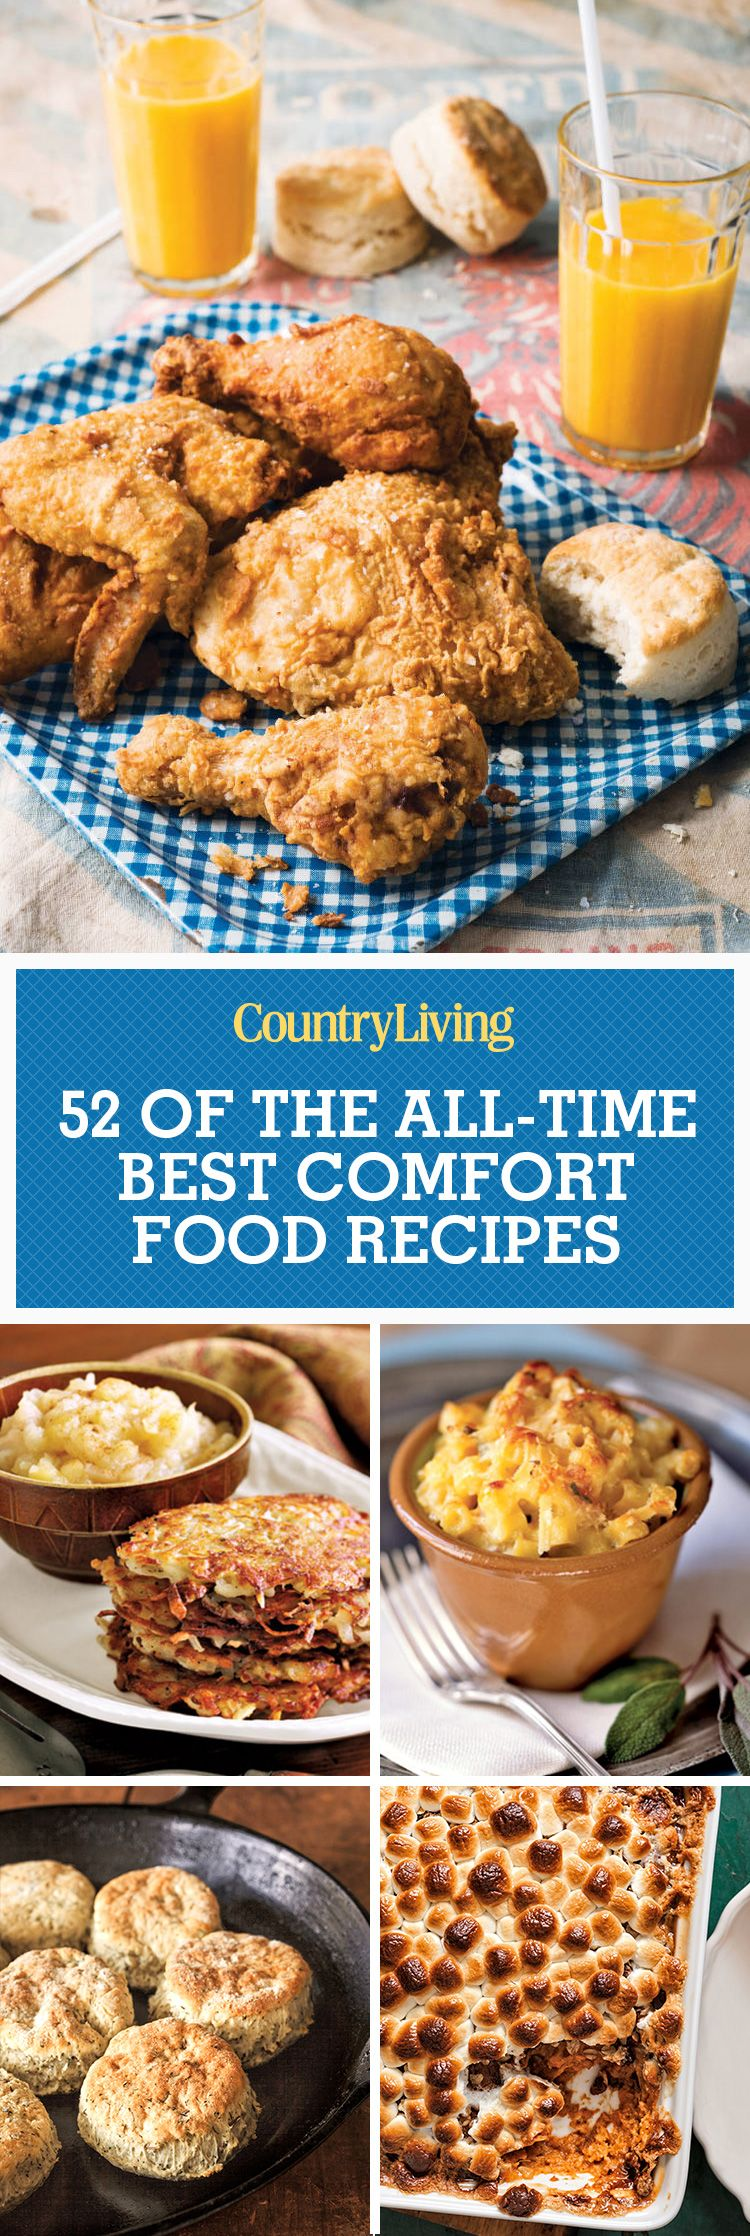 55 easy comfort food recipes best southern comfort food ideas forumfinder Image collections